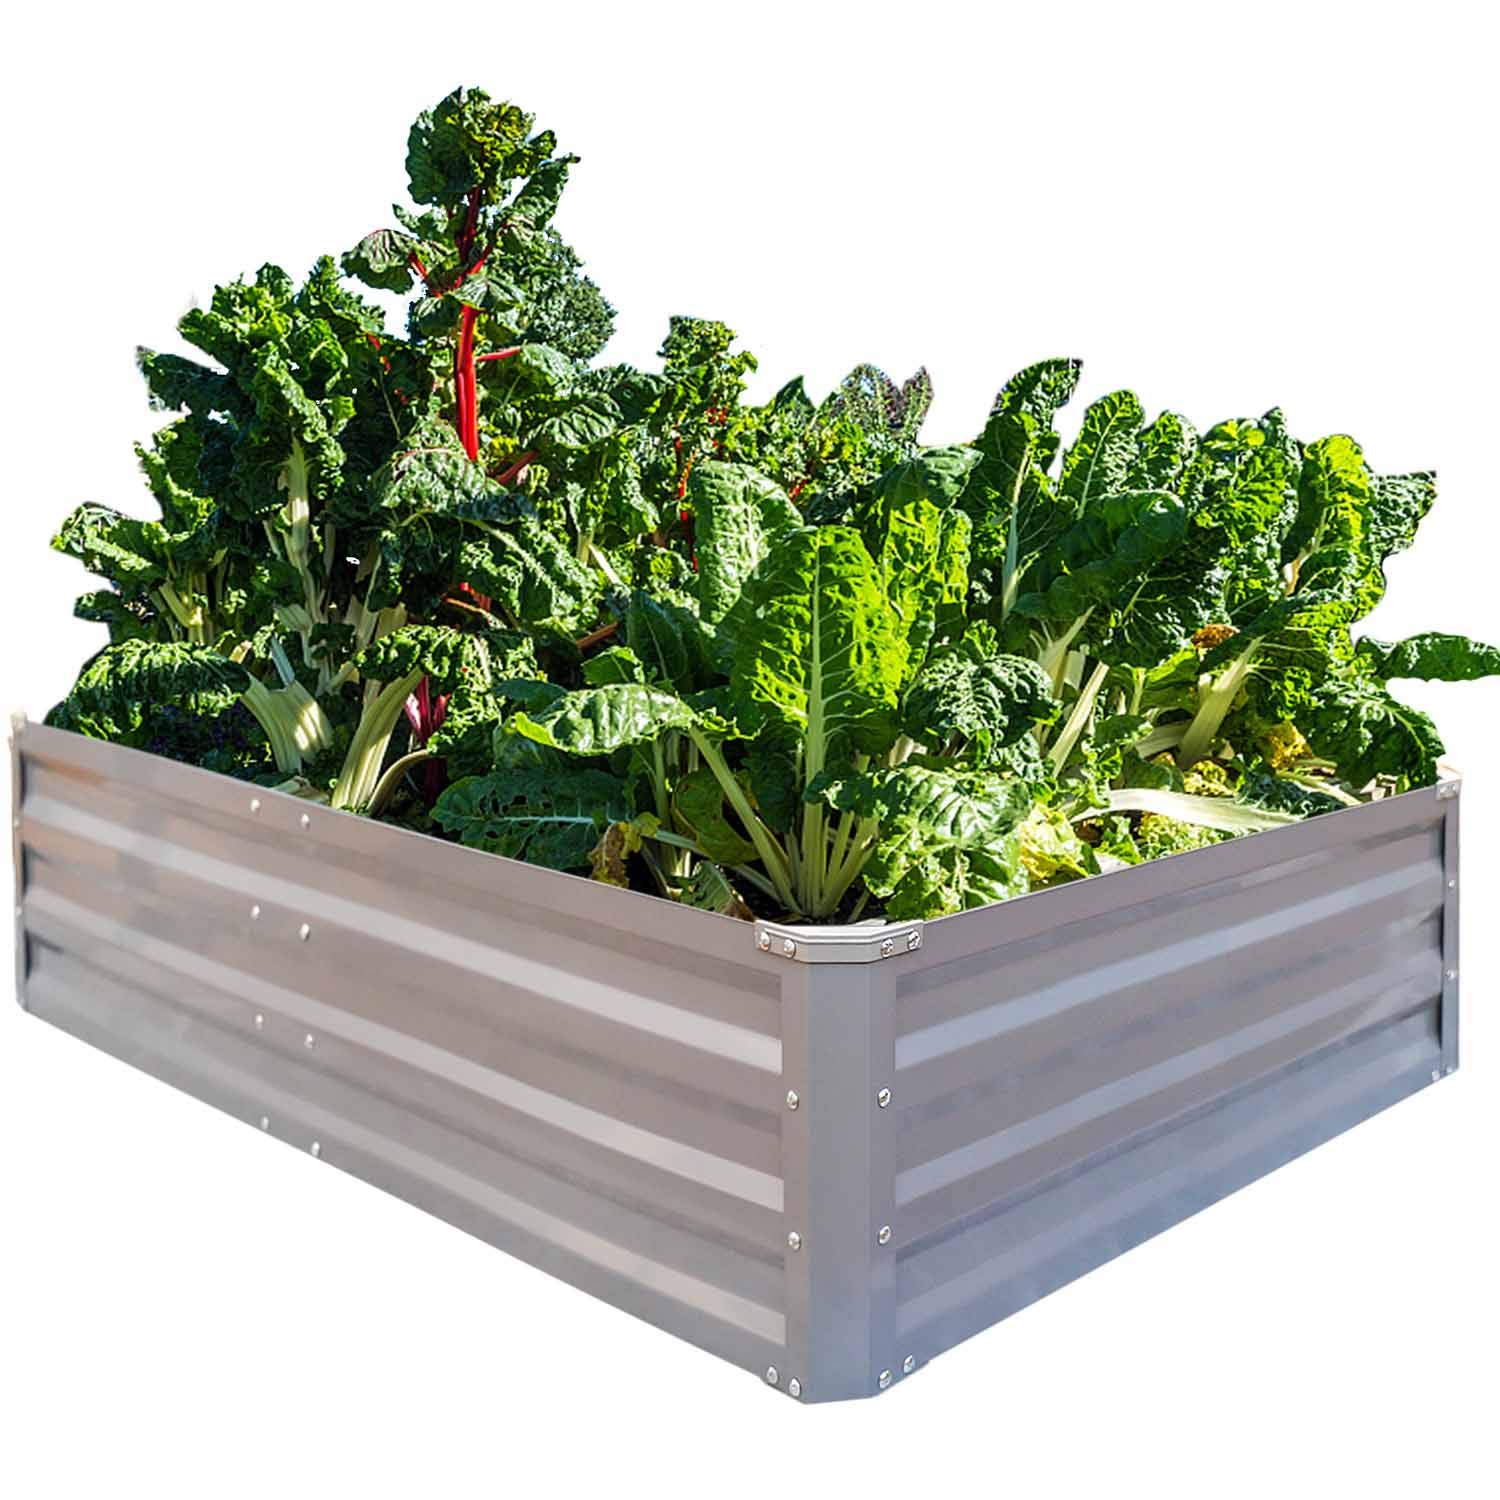 Foyuee Galvanized Raised Garden Beds For Vegetables Metal Planter Boxes Outdoor Large Patio Bed Kit Planting Herb 4 X 3 X 1ft Amazon In Garden Outdoors